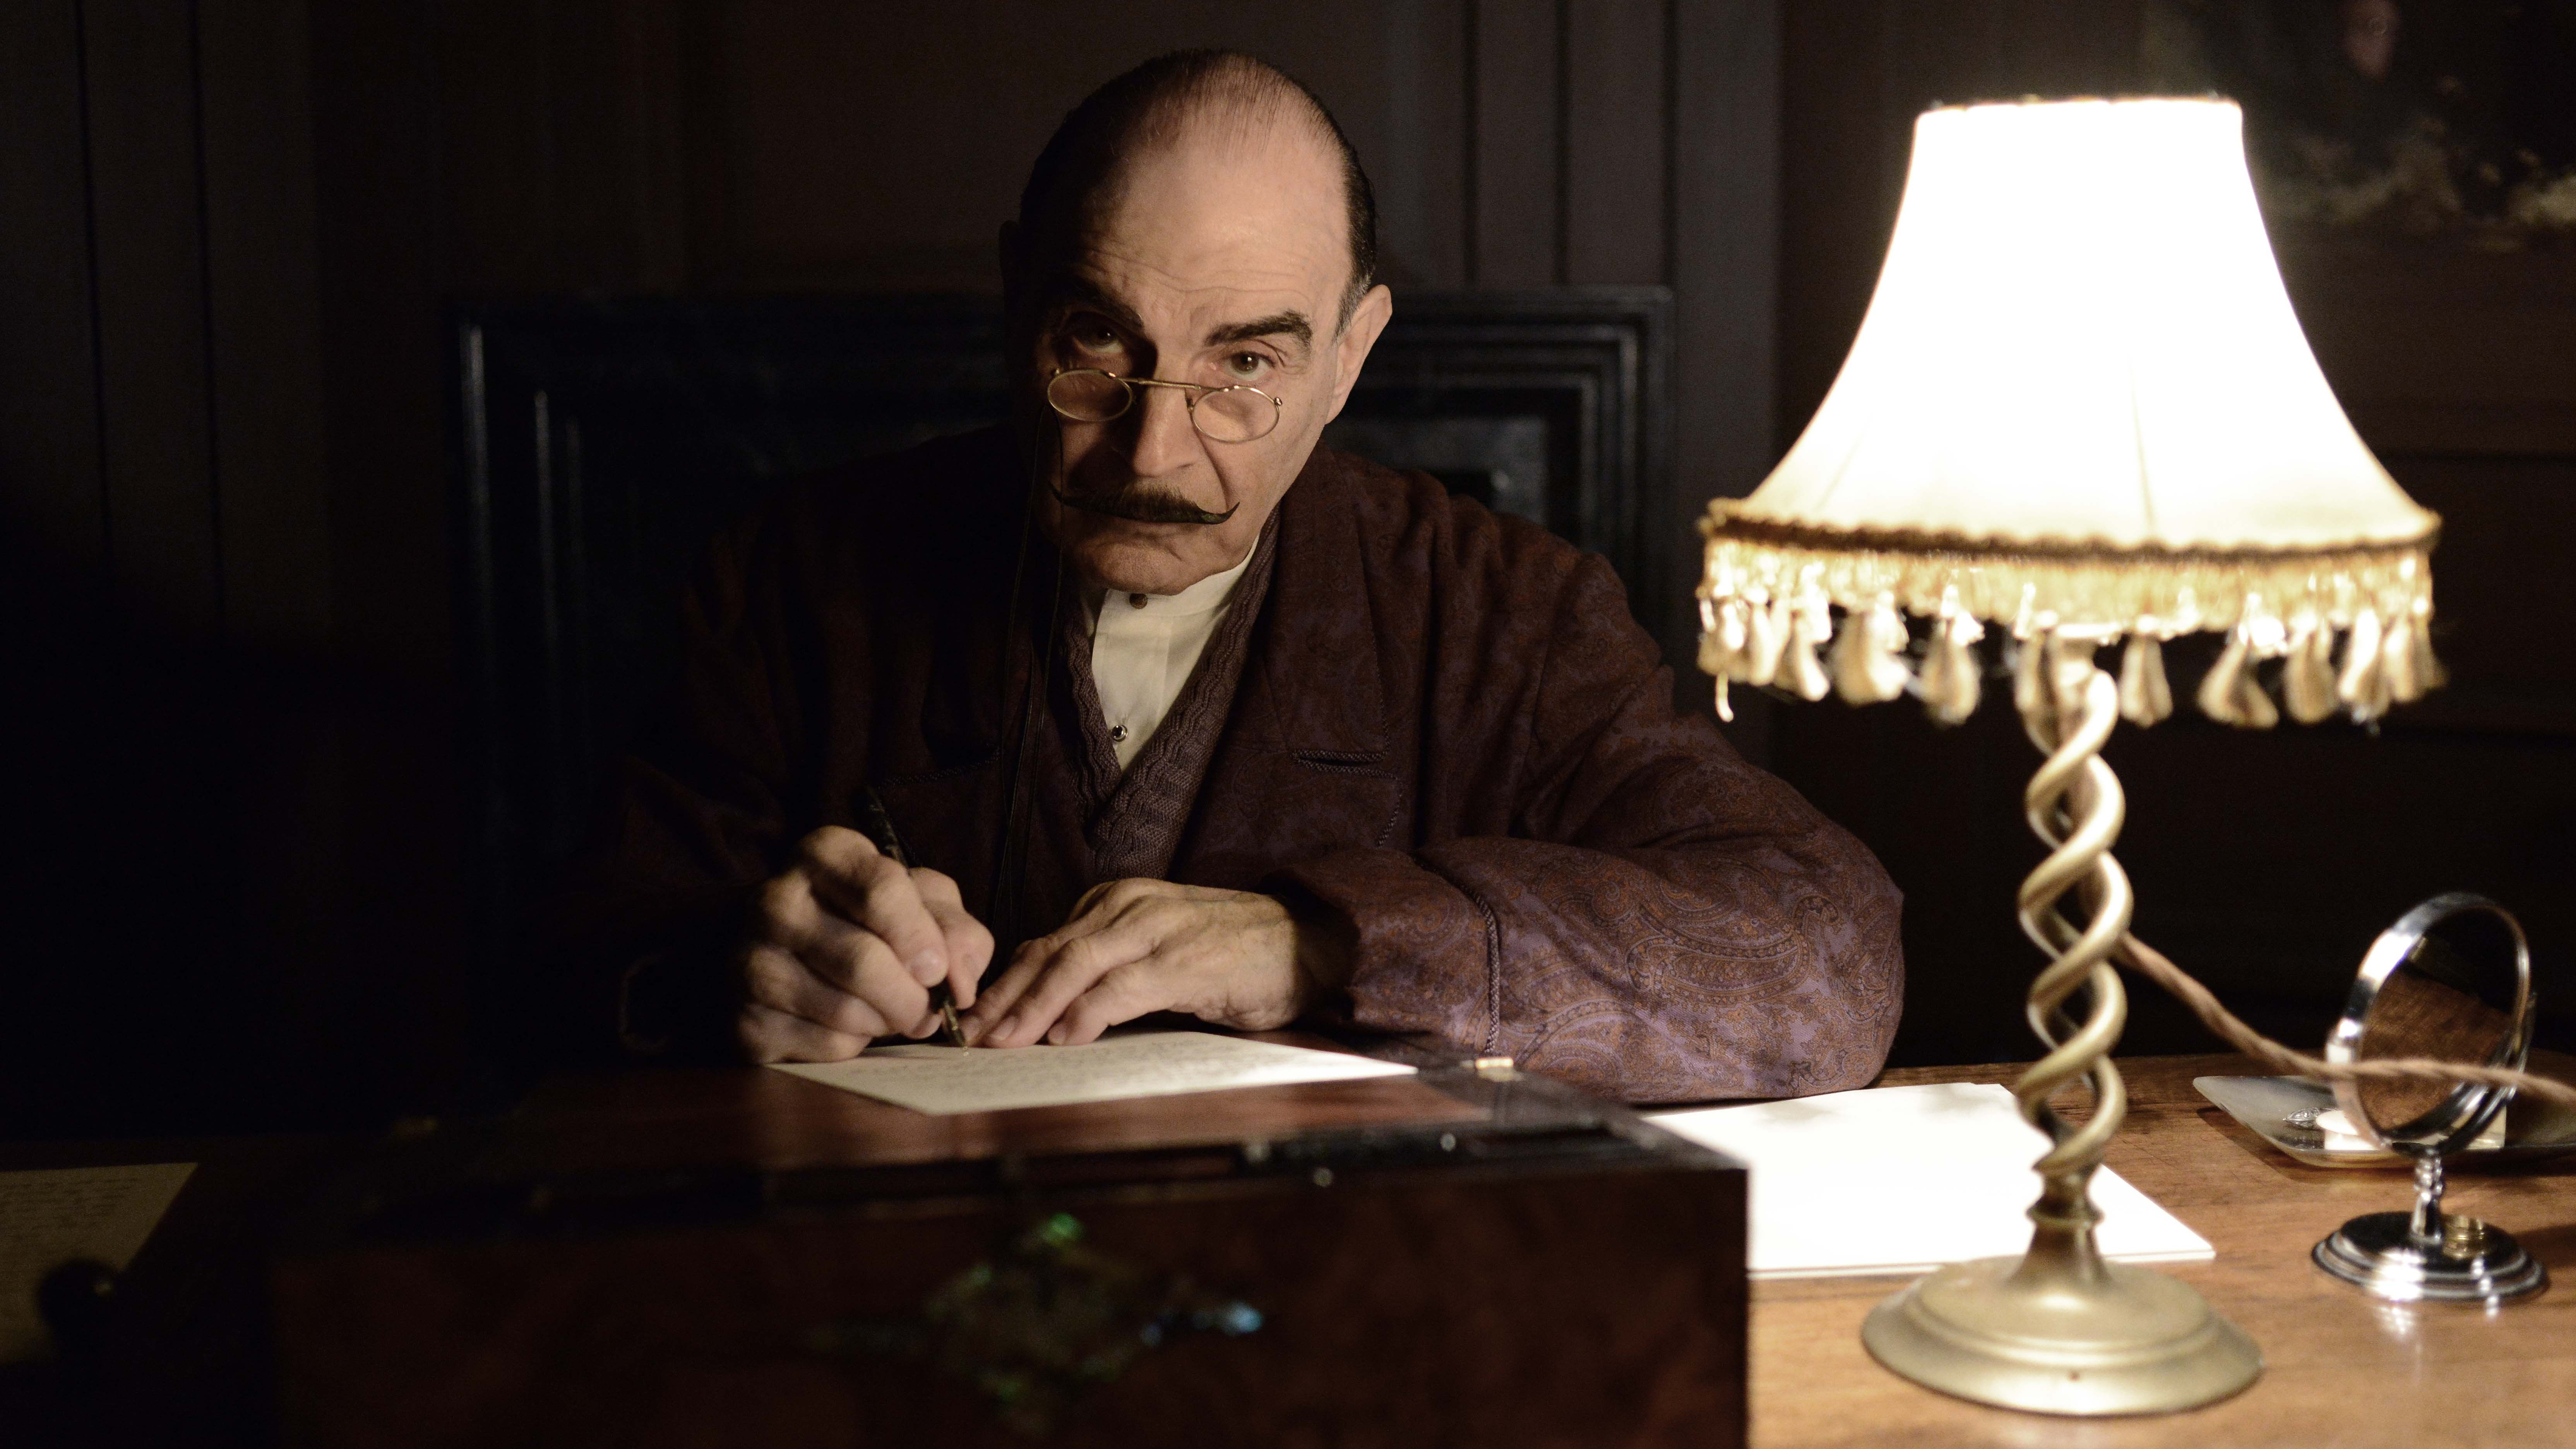 Case Closed: Agatha Christie's Detective Poirot Solves His Last TV Mystery